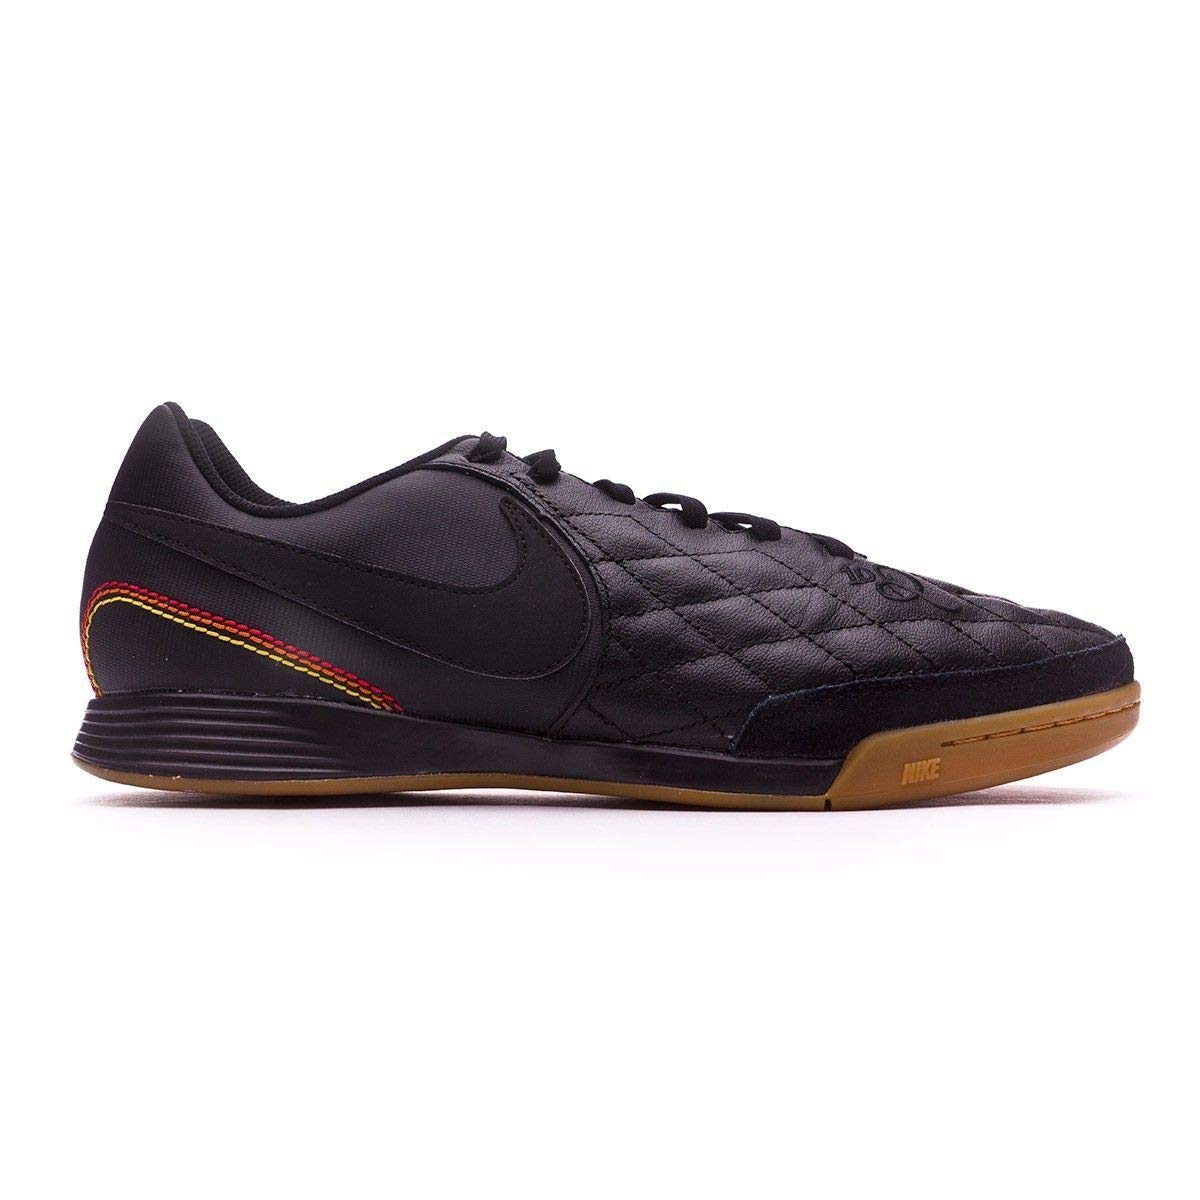 2015a7d7ccd1 Amazon.com | Nike Tiempo Ligera IV 10R IC Ronaldhino Soccer Shoes Black  Gold | Soccer